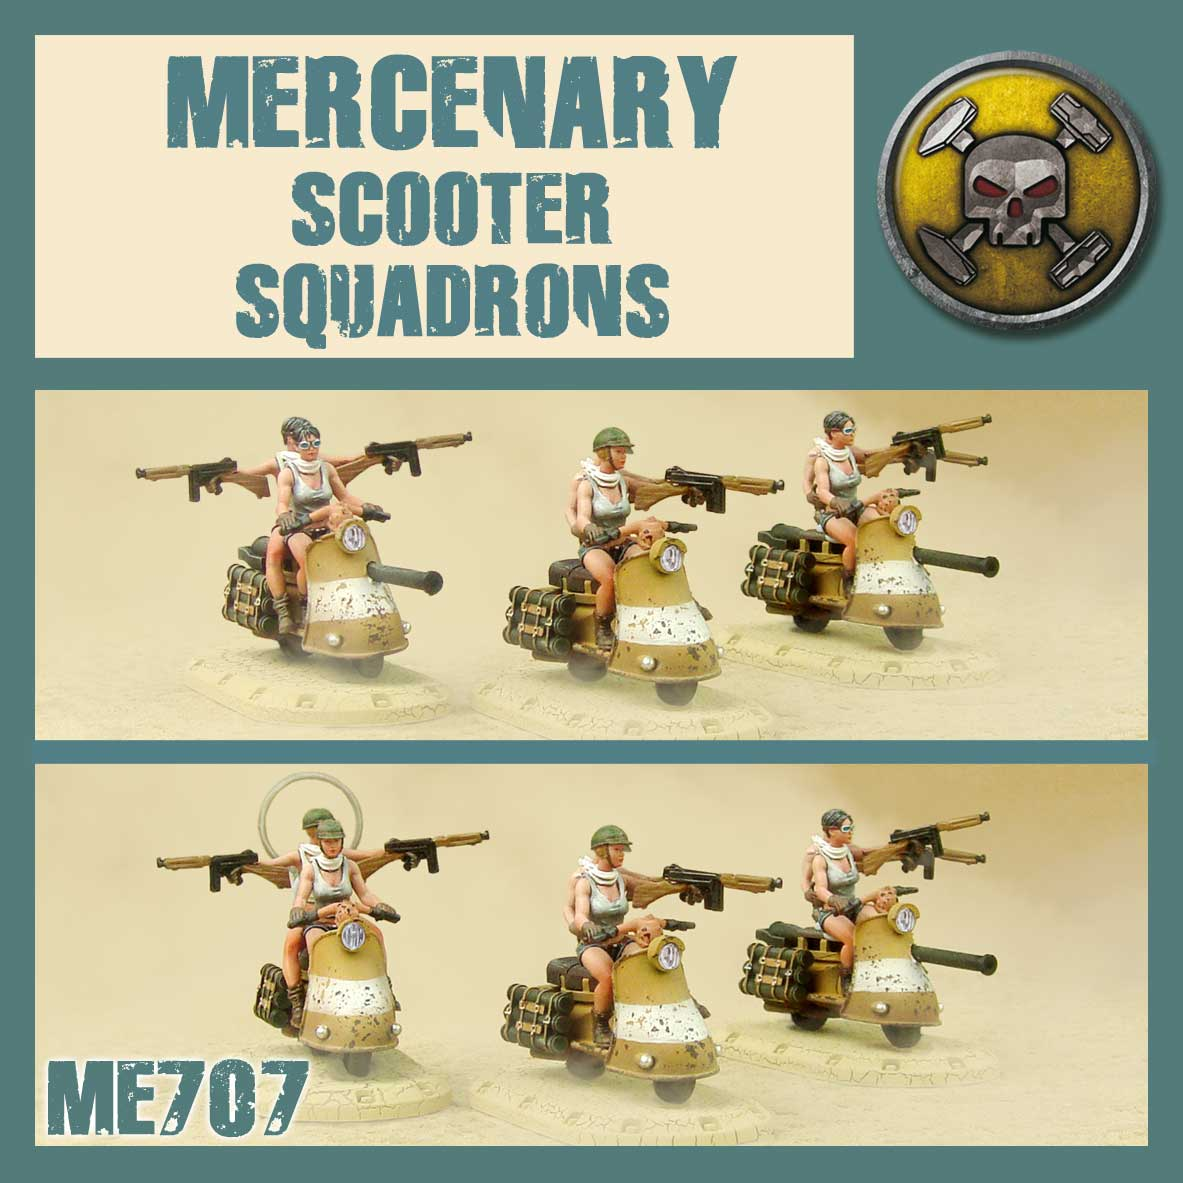 Mercenary Scooter Squadron